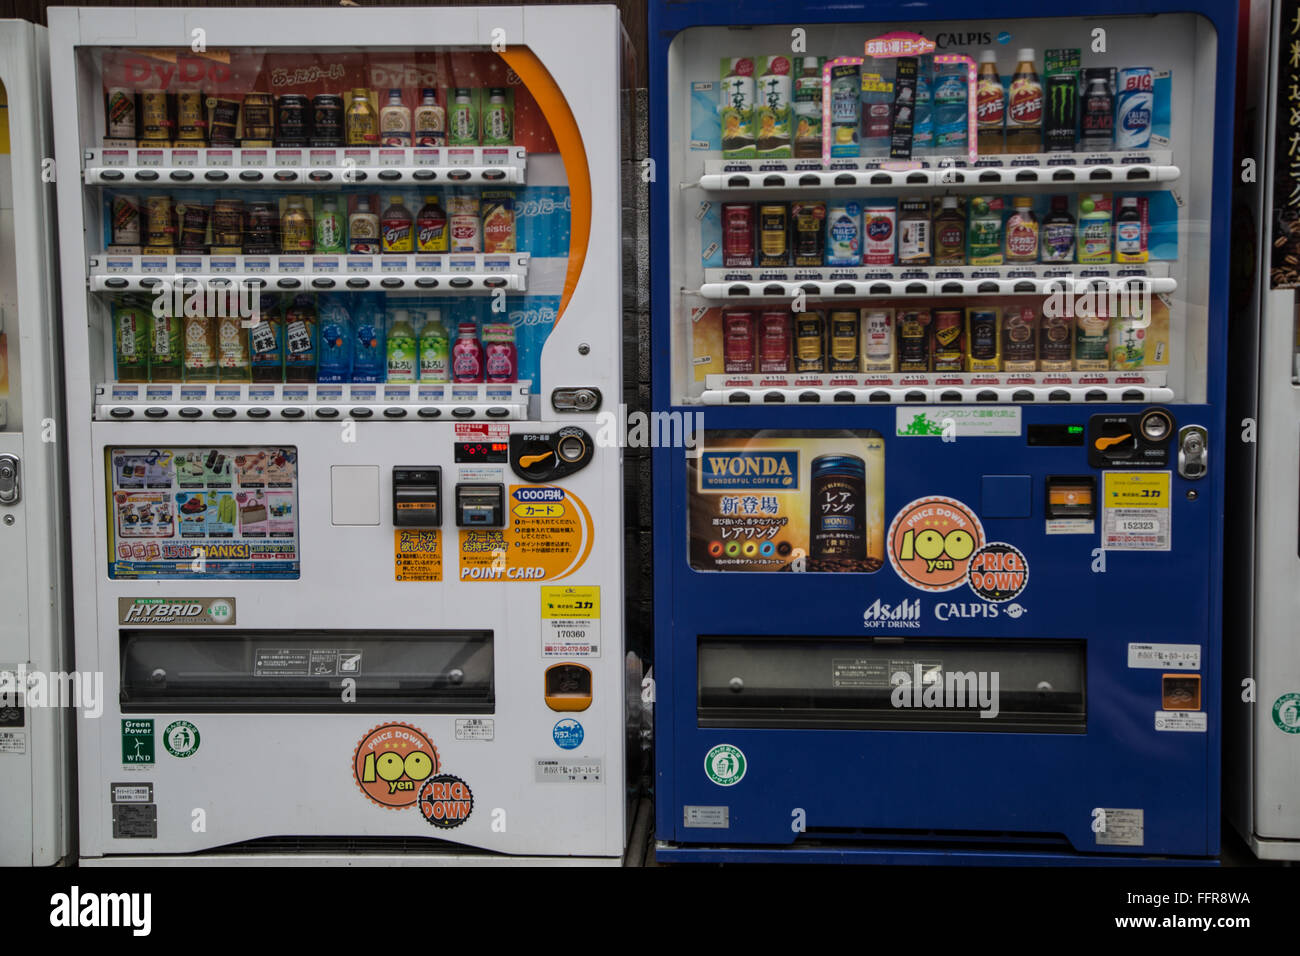 Vending machines in the central neighborhood of Shibuya, Tokyo, in Japan, with colorful beverages and Japanese characters. - Stock Image